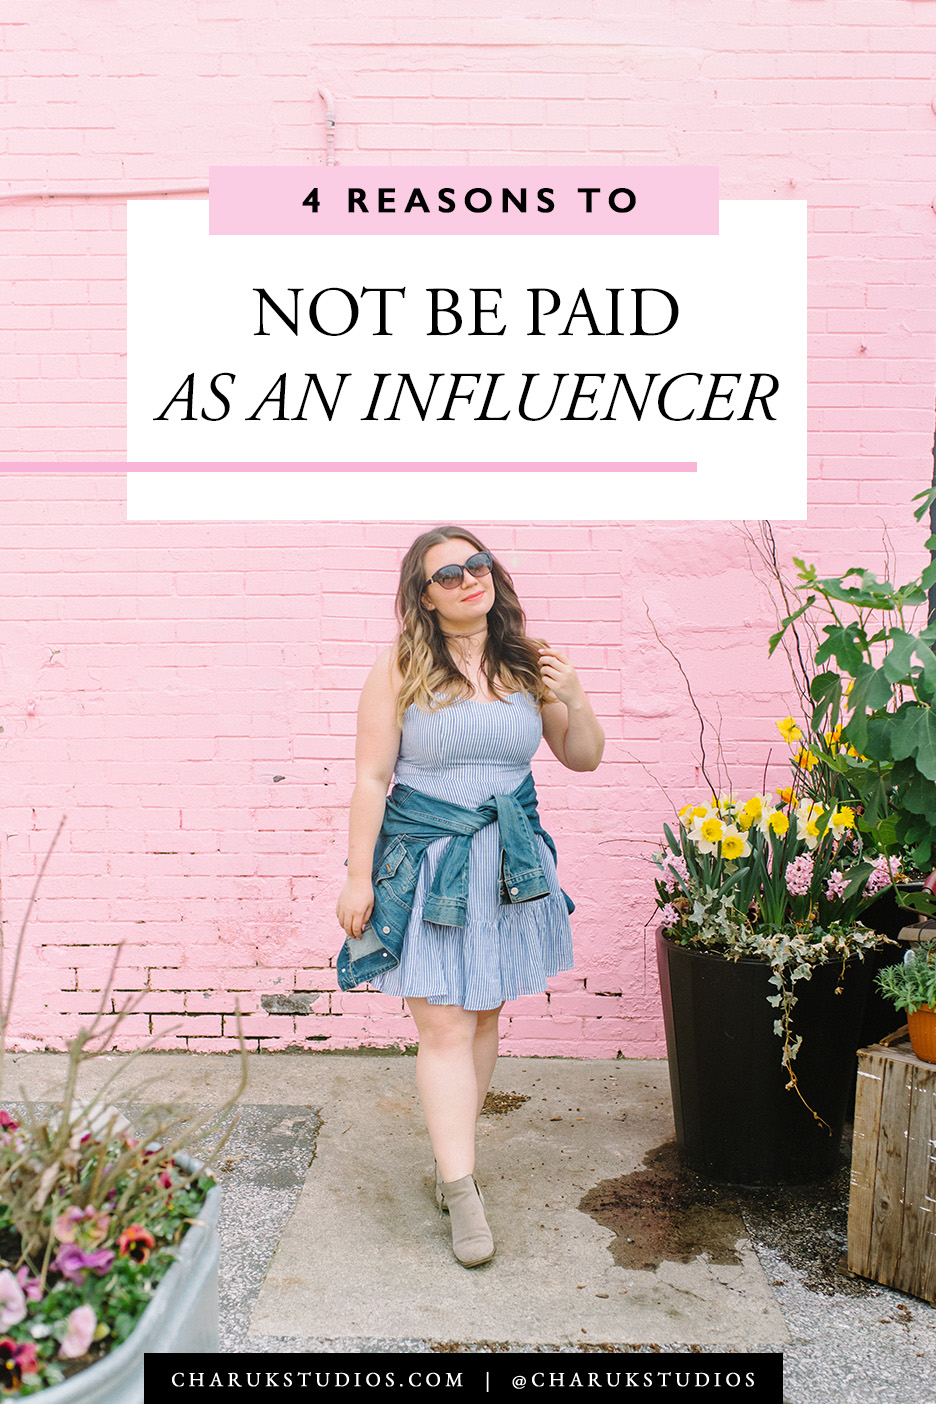 4 Reasons Why to Not Be Paid as an Influencer by Charuk Studios